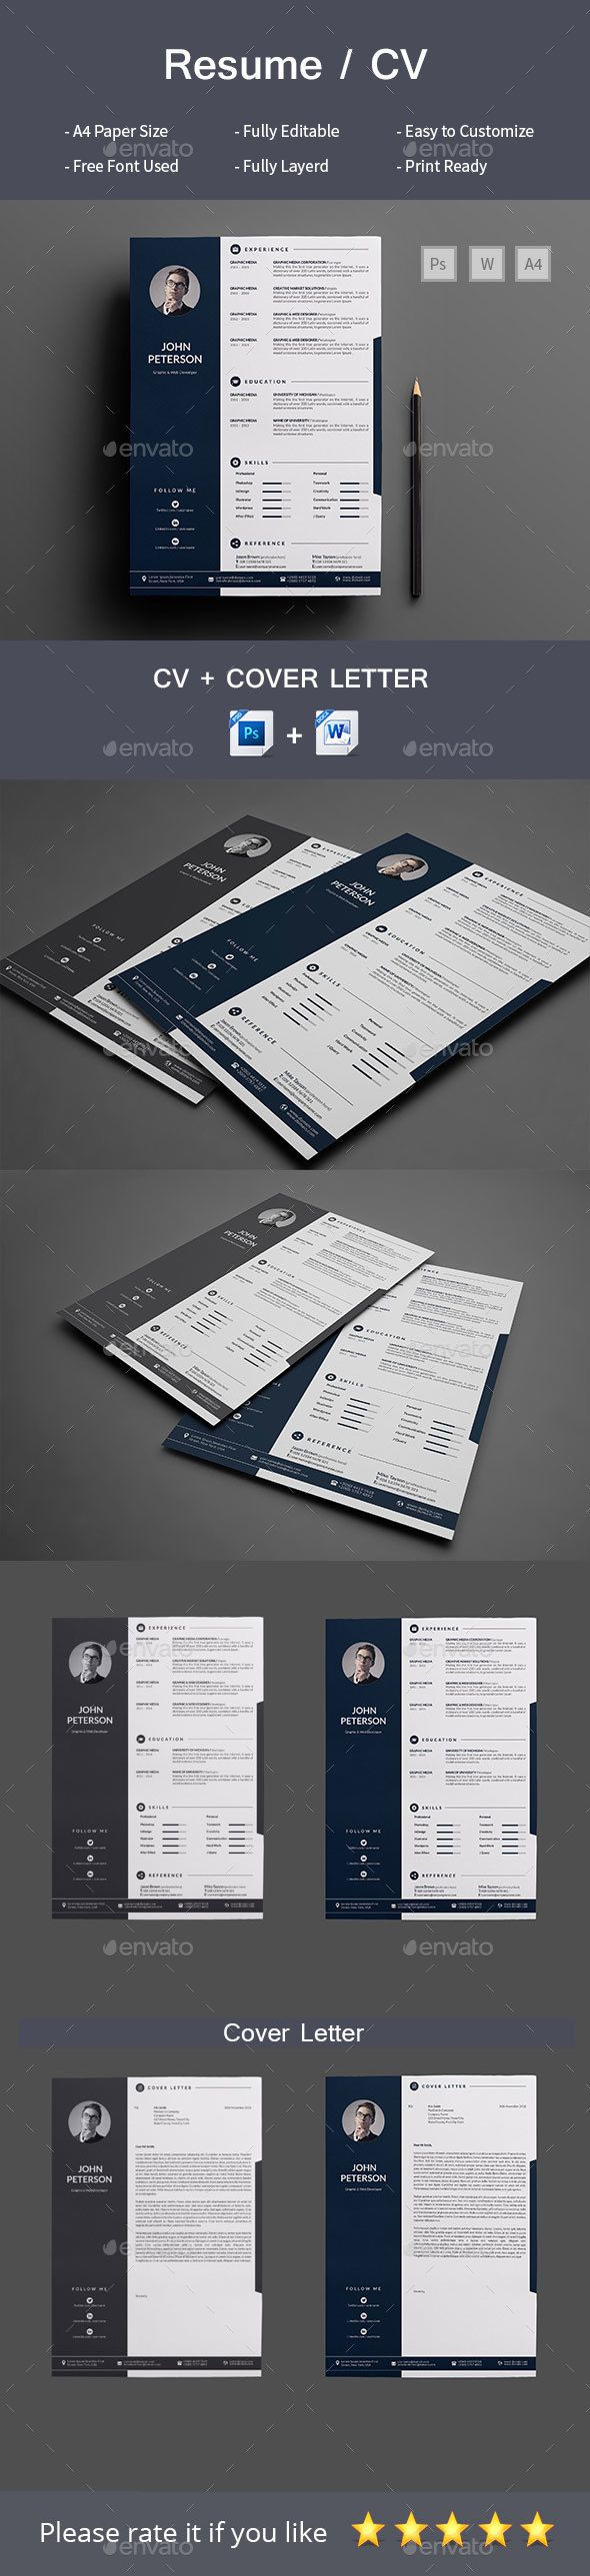 Cv And Resume Templates%0A Resume CoverLetter